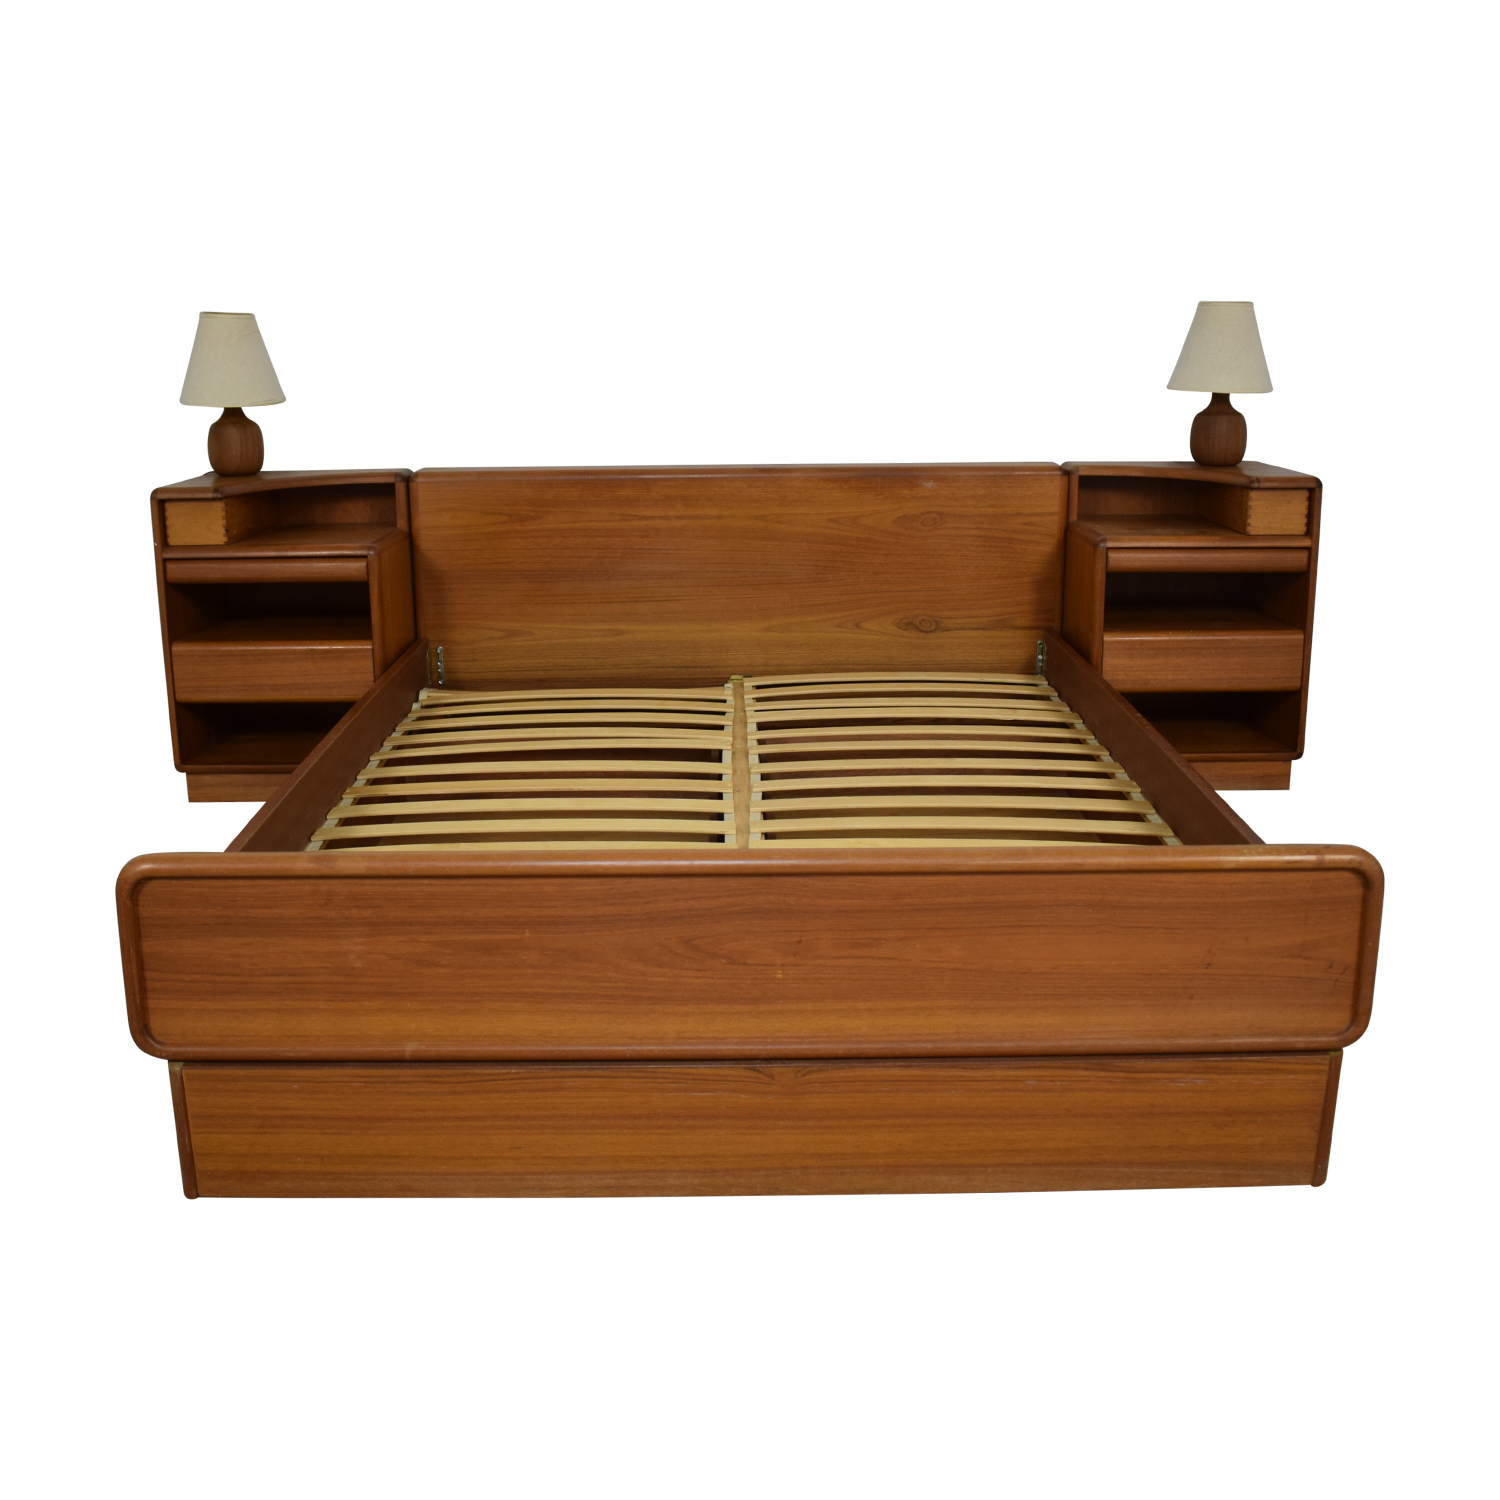 buy Brouer Queen Bed with Matching Side Tables and Lamps Brouer